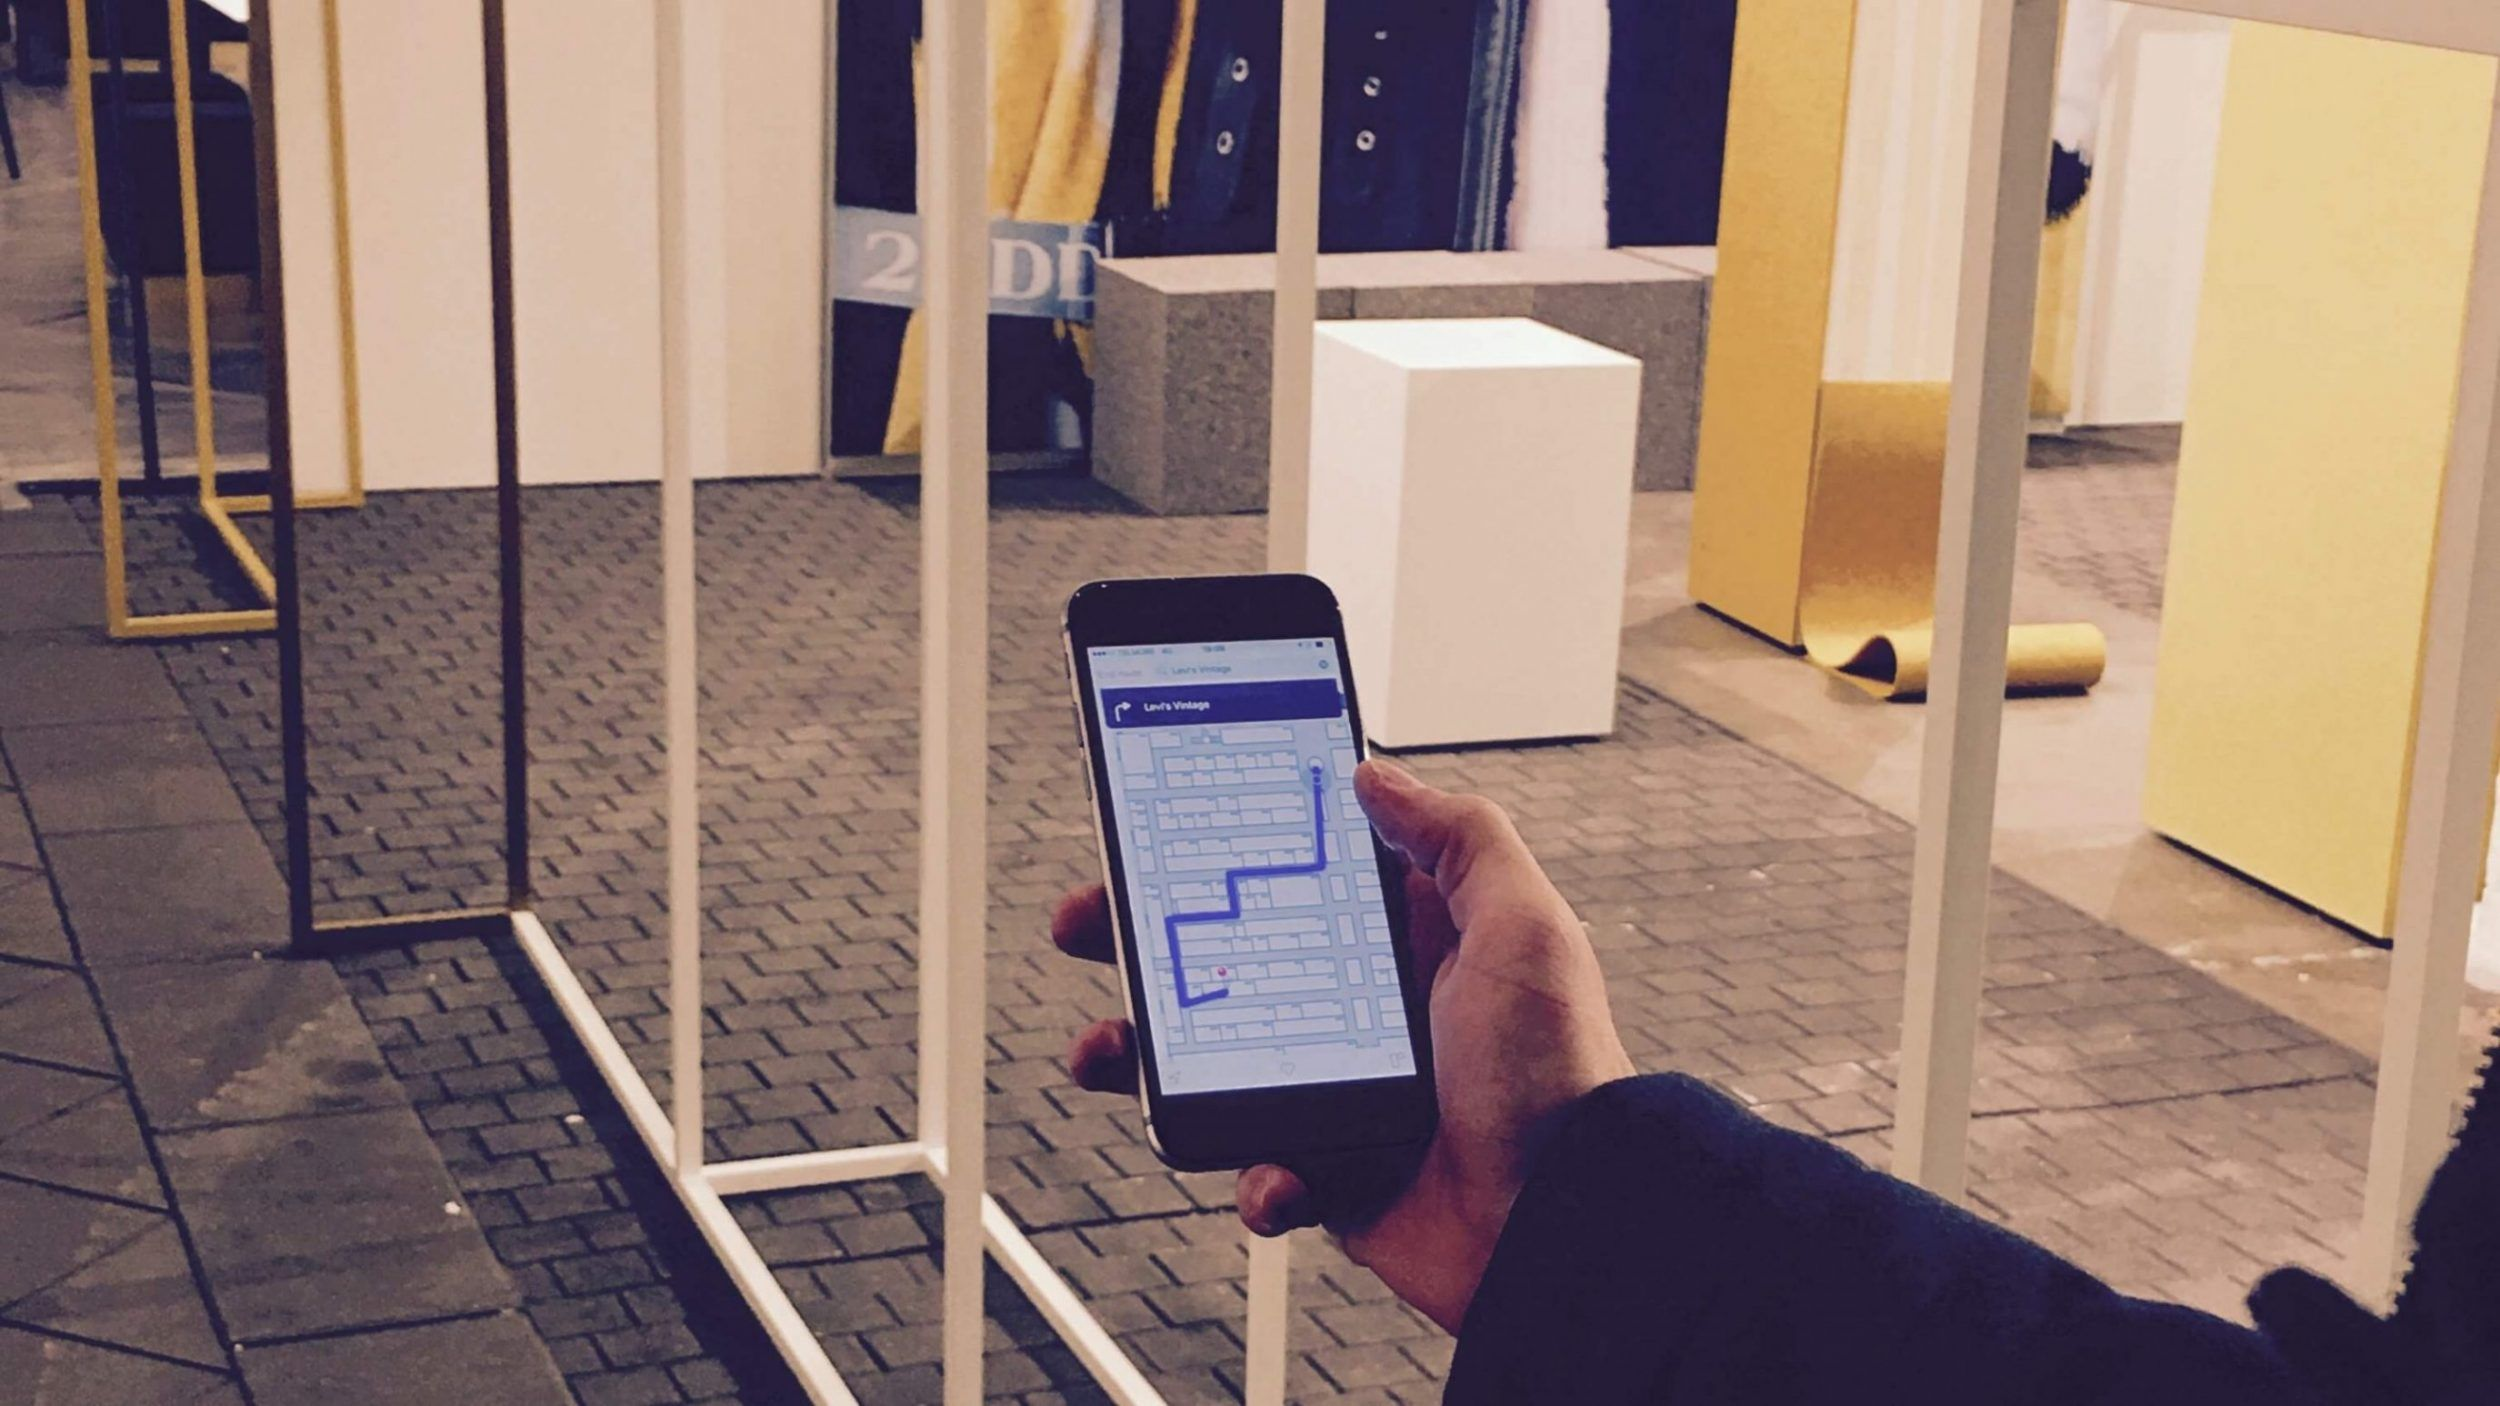 copenhagen_fashion_show using indoo.rs indoor positioning and navigation